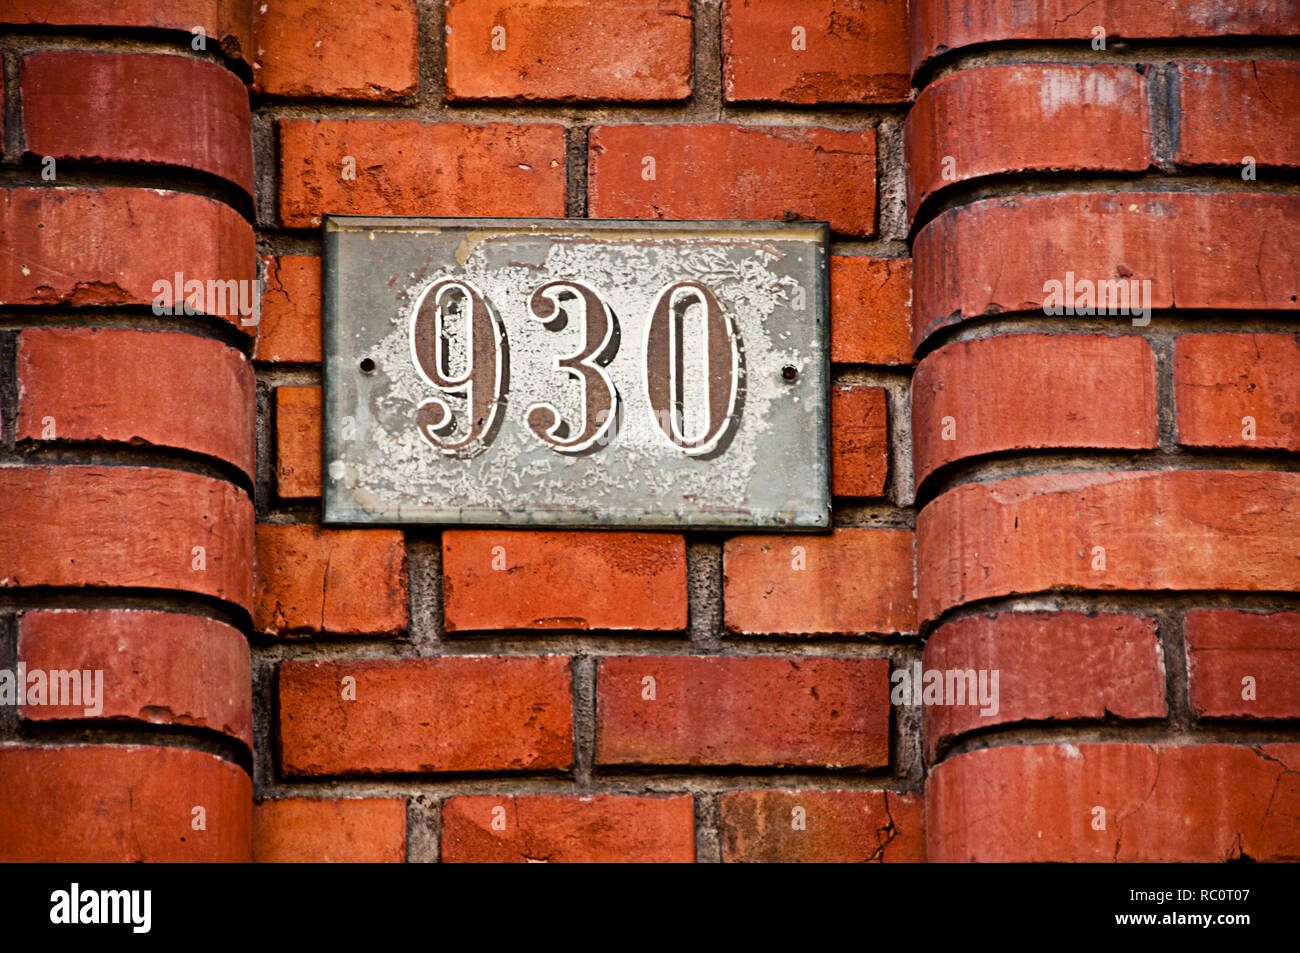 number  930 - house numbering plate Stock Photo